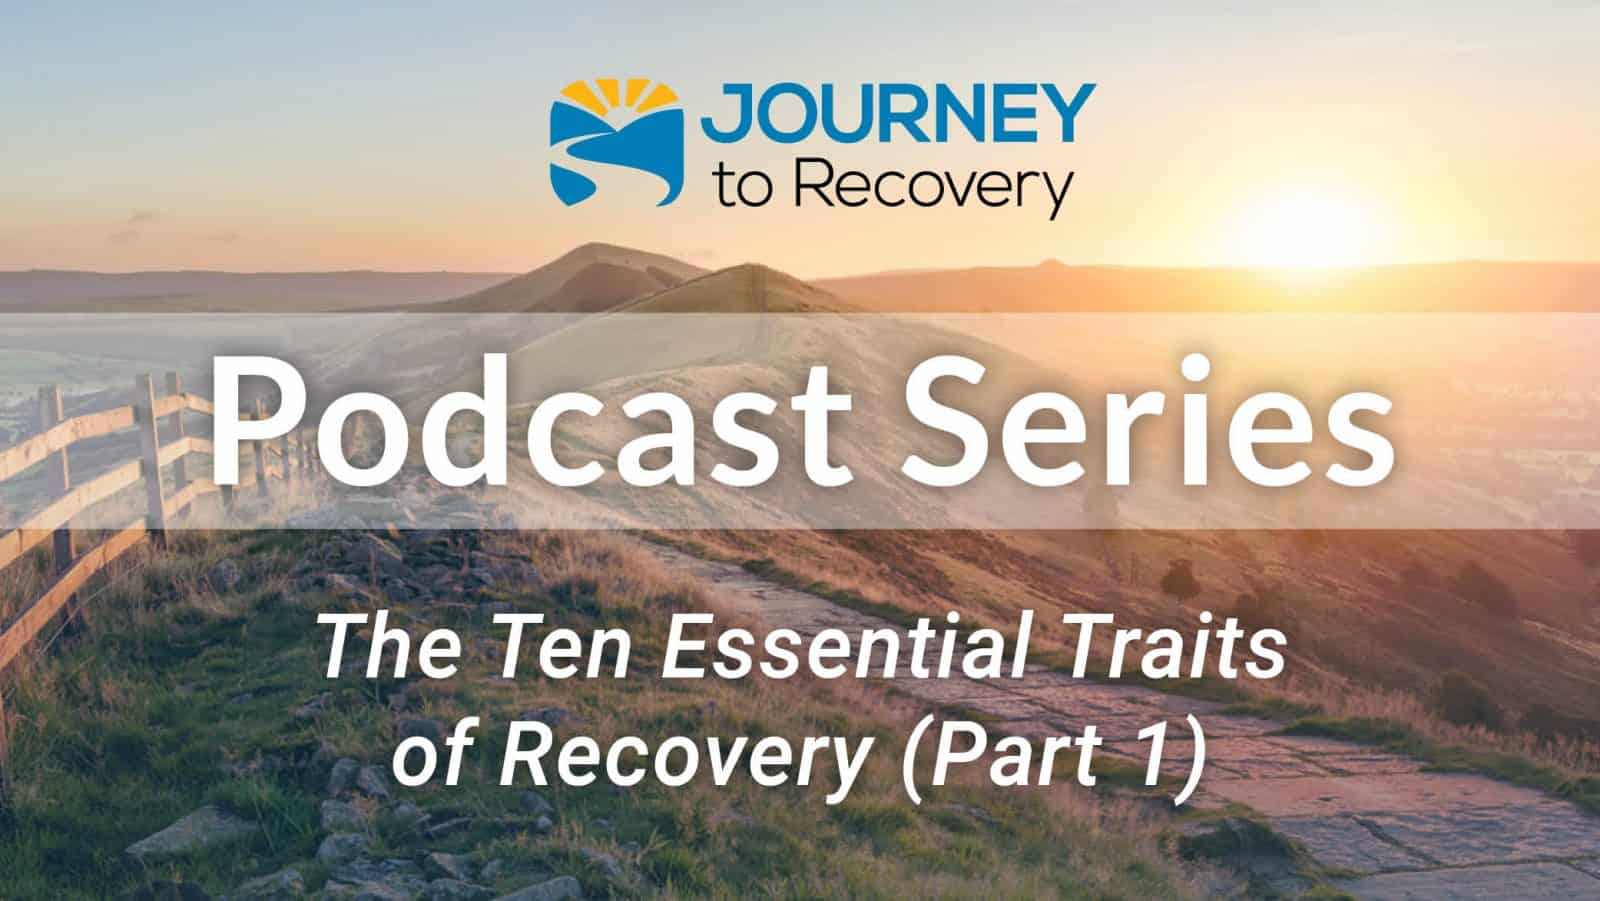 The Ten Essential Traits of Recovery (Part 1)